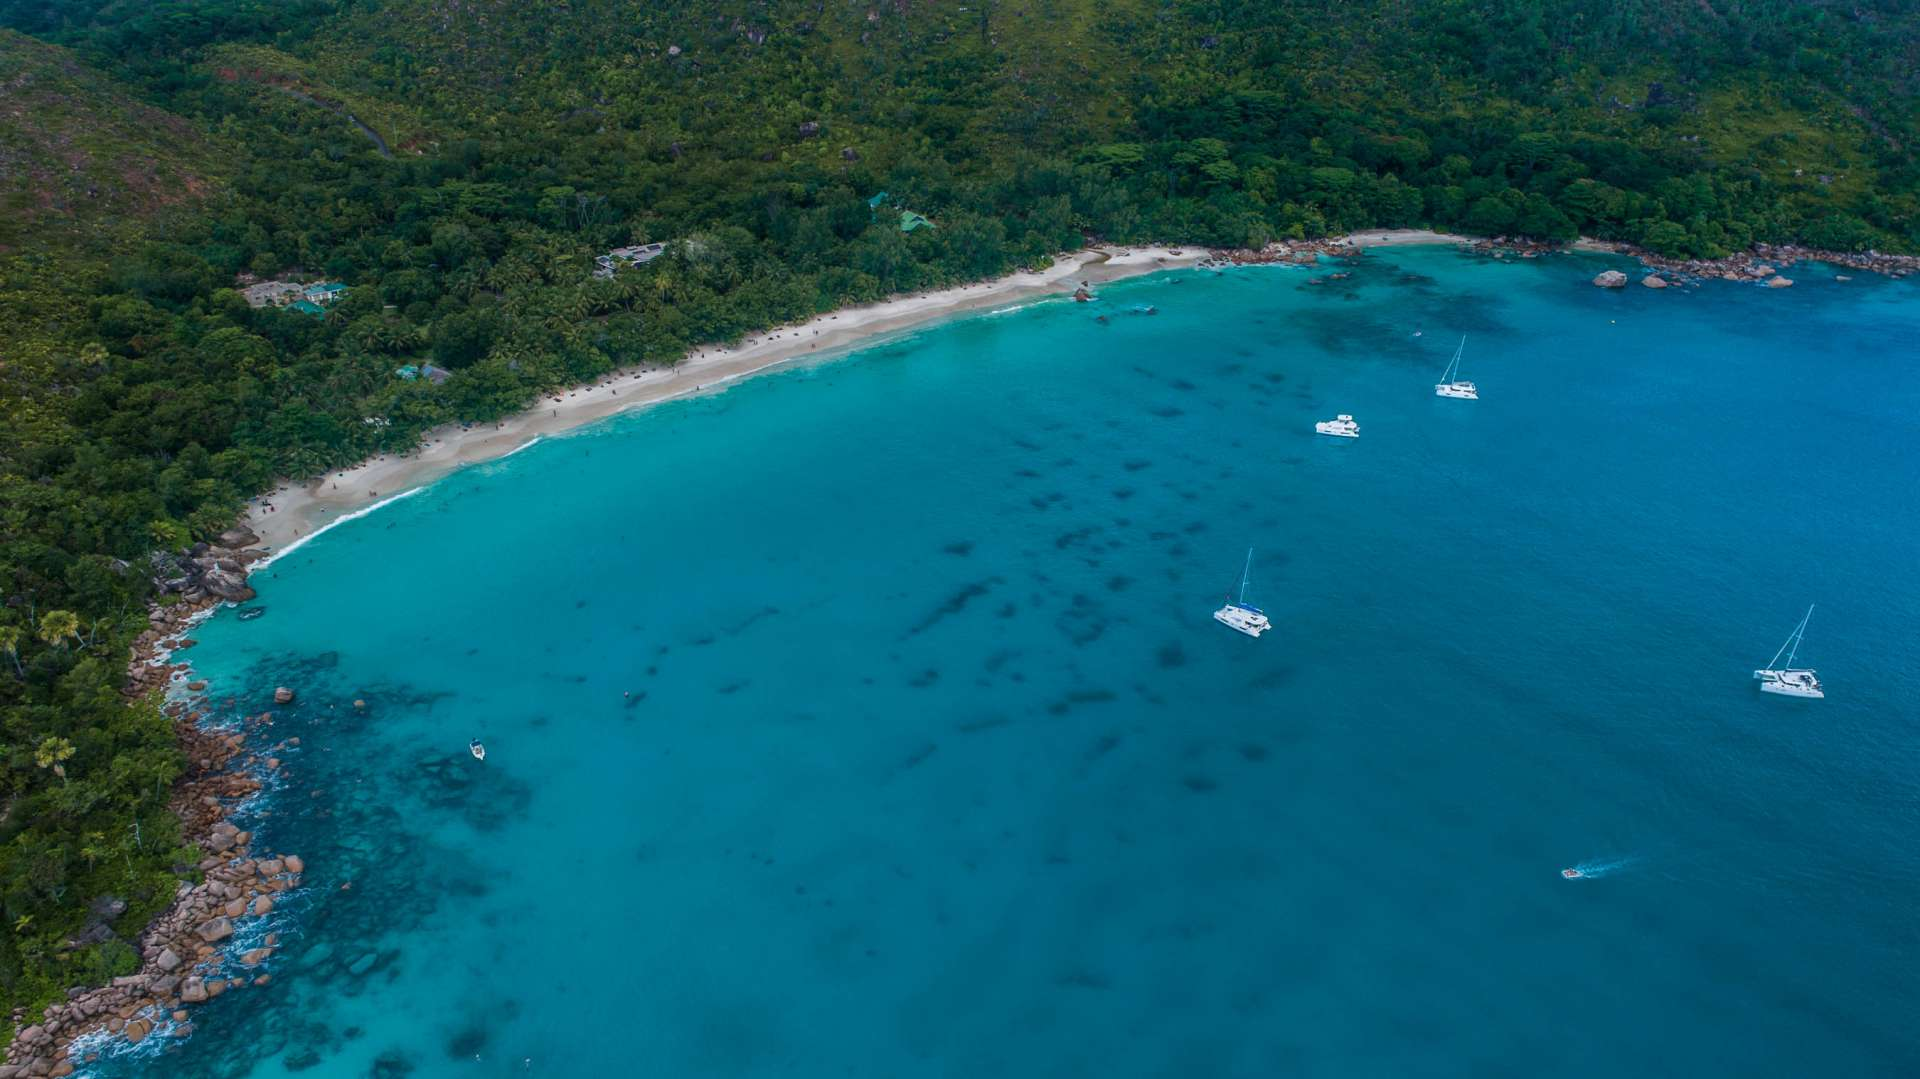 Seychelles Anse Lazio aerial view drone enrico pescantini from above 2